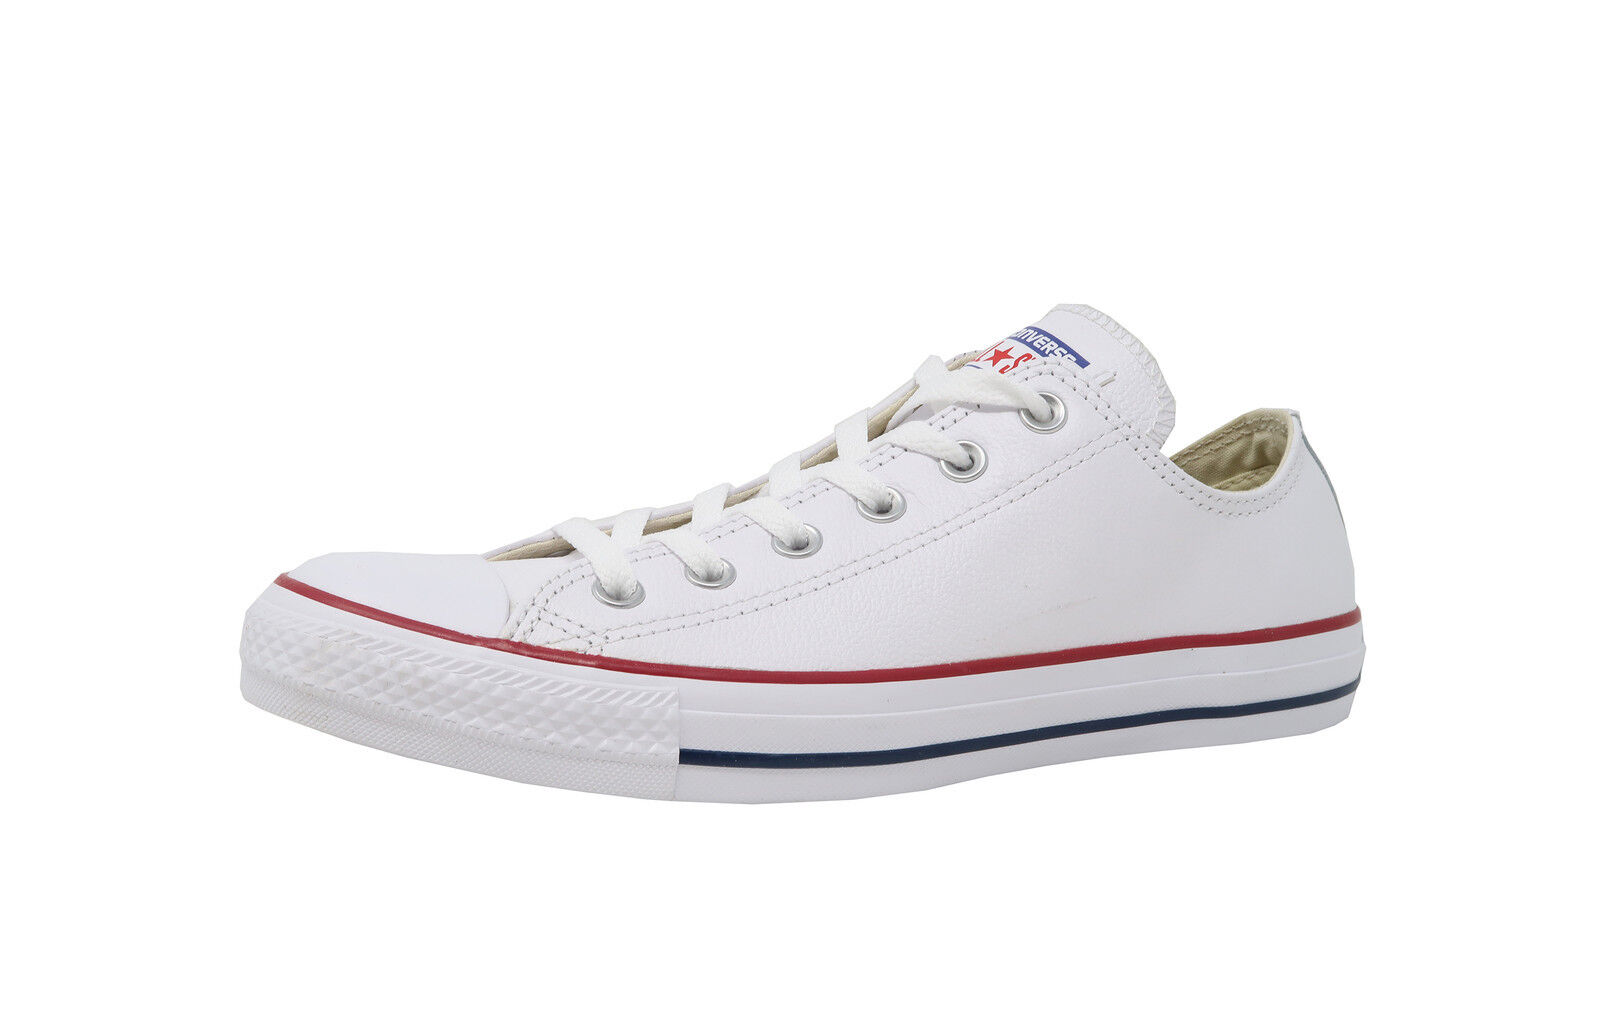 84b8598afd58ea Converse Chuck Taylor All Star Leather Ox White Low Top SNEAKERS ...